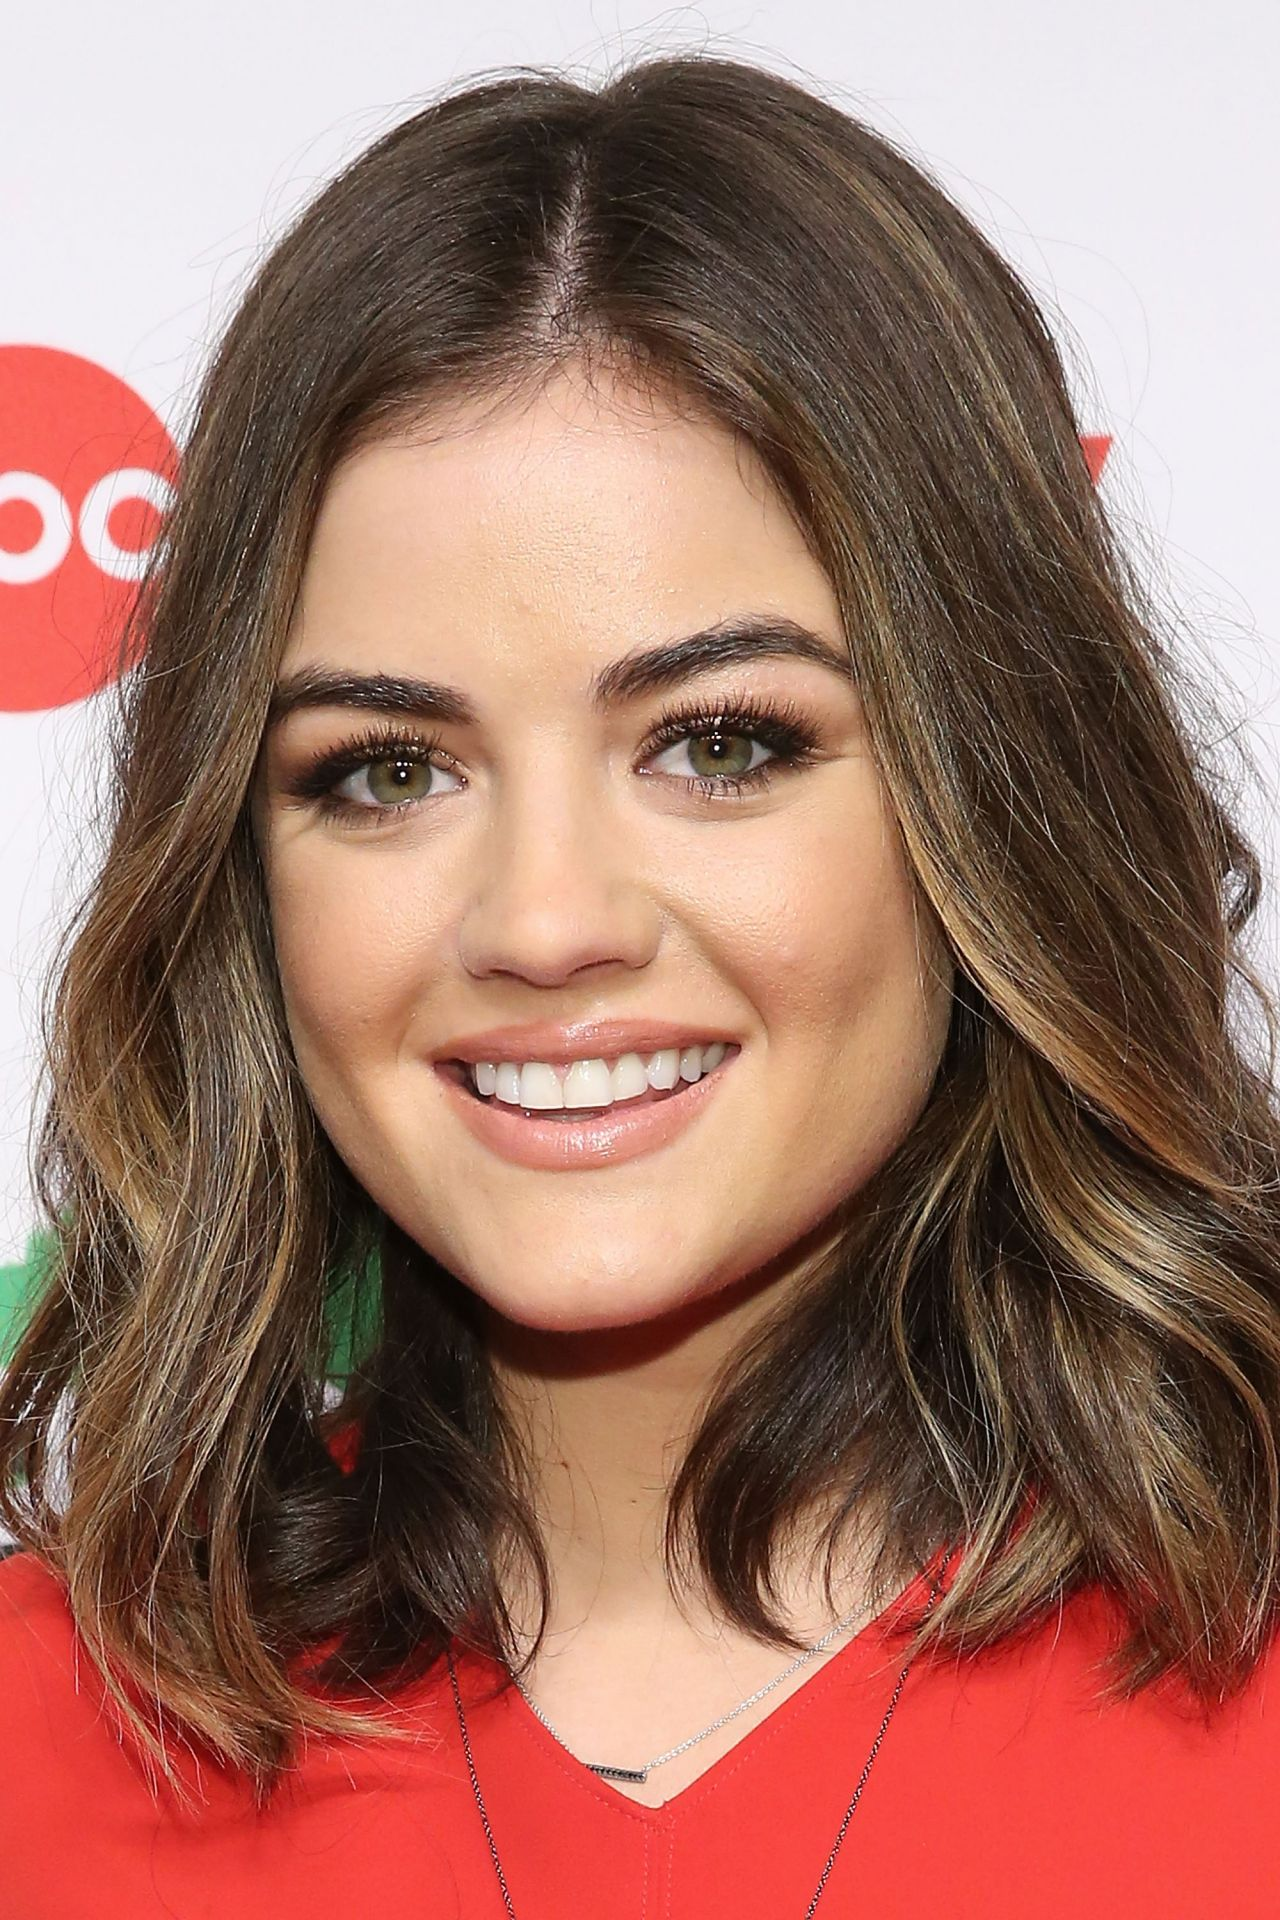 lucy hale abcs 25 days of christmas celebration in nyc december 2014 - Abc 25 Days Of Christmas Schedule 2014